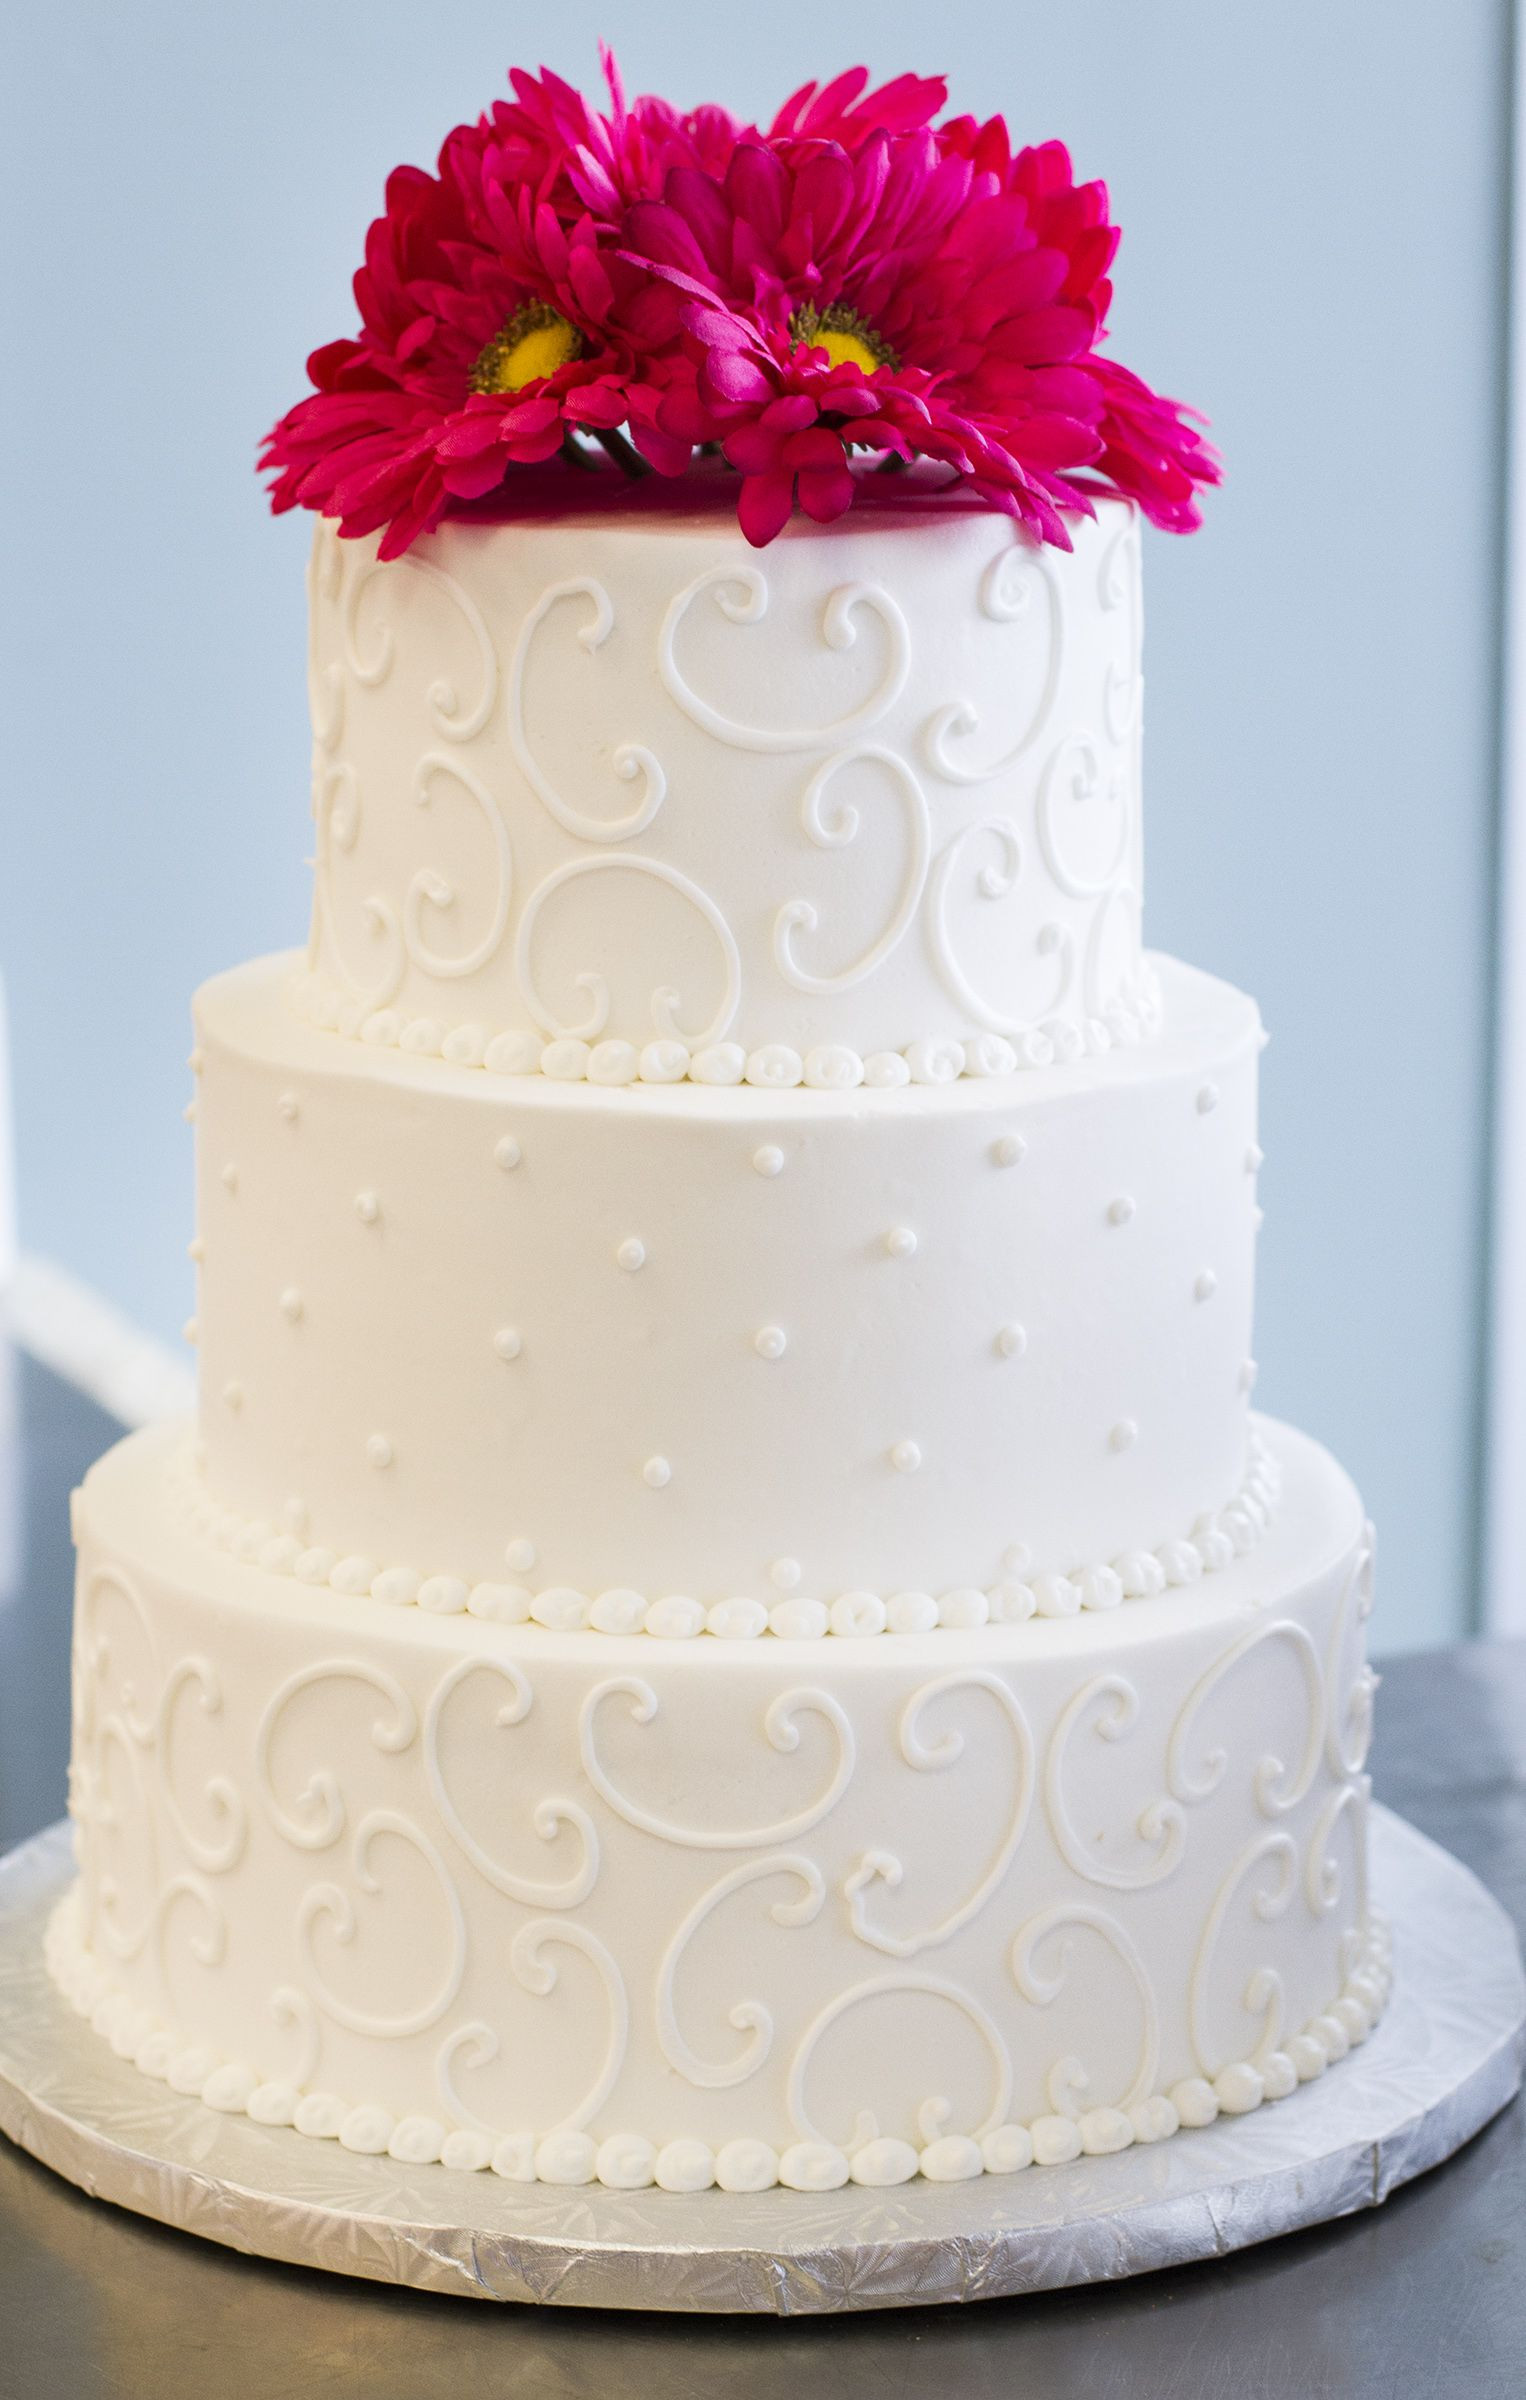 Beautiful Simple Wedding Cakes  A simple beautiful white wedding cake with pink flowers